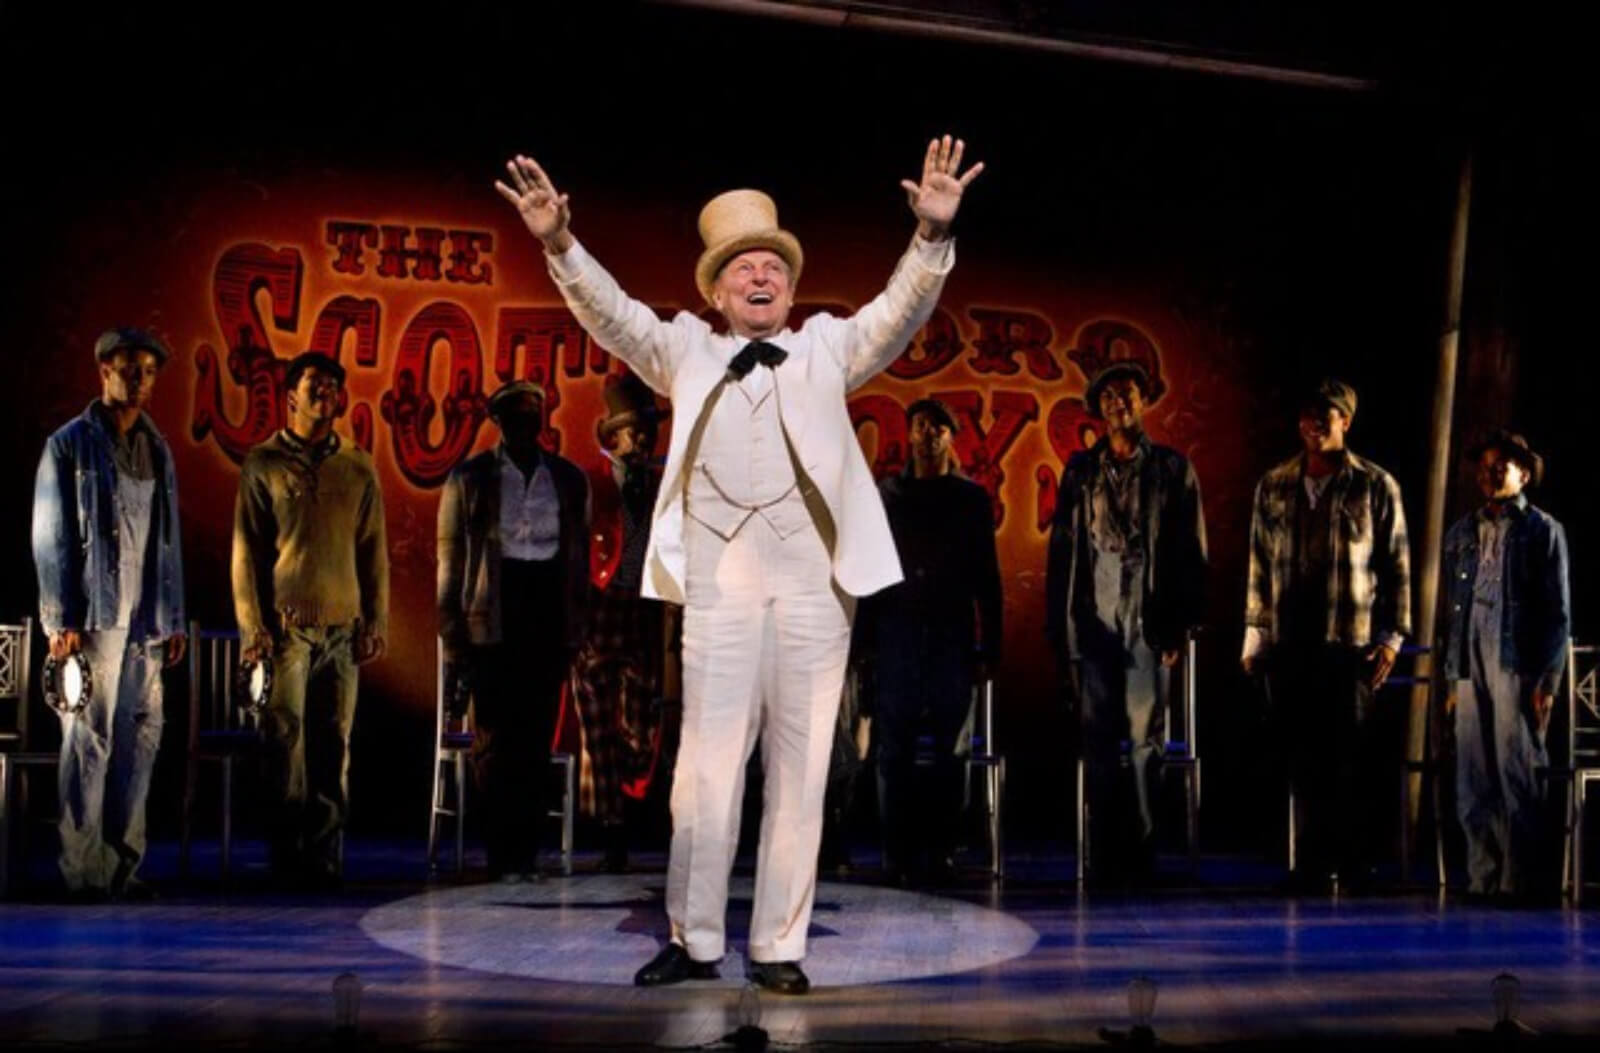 """The Interlocutor (John Cullum) is saying """"Gentleman be seated."""" He is wearing a white linen suit and a white top hat. He is in a hard edged spot. The Scottsboro Boys are in the background."""